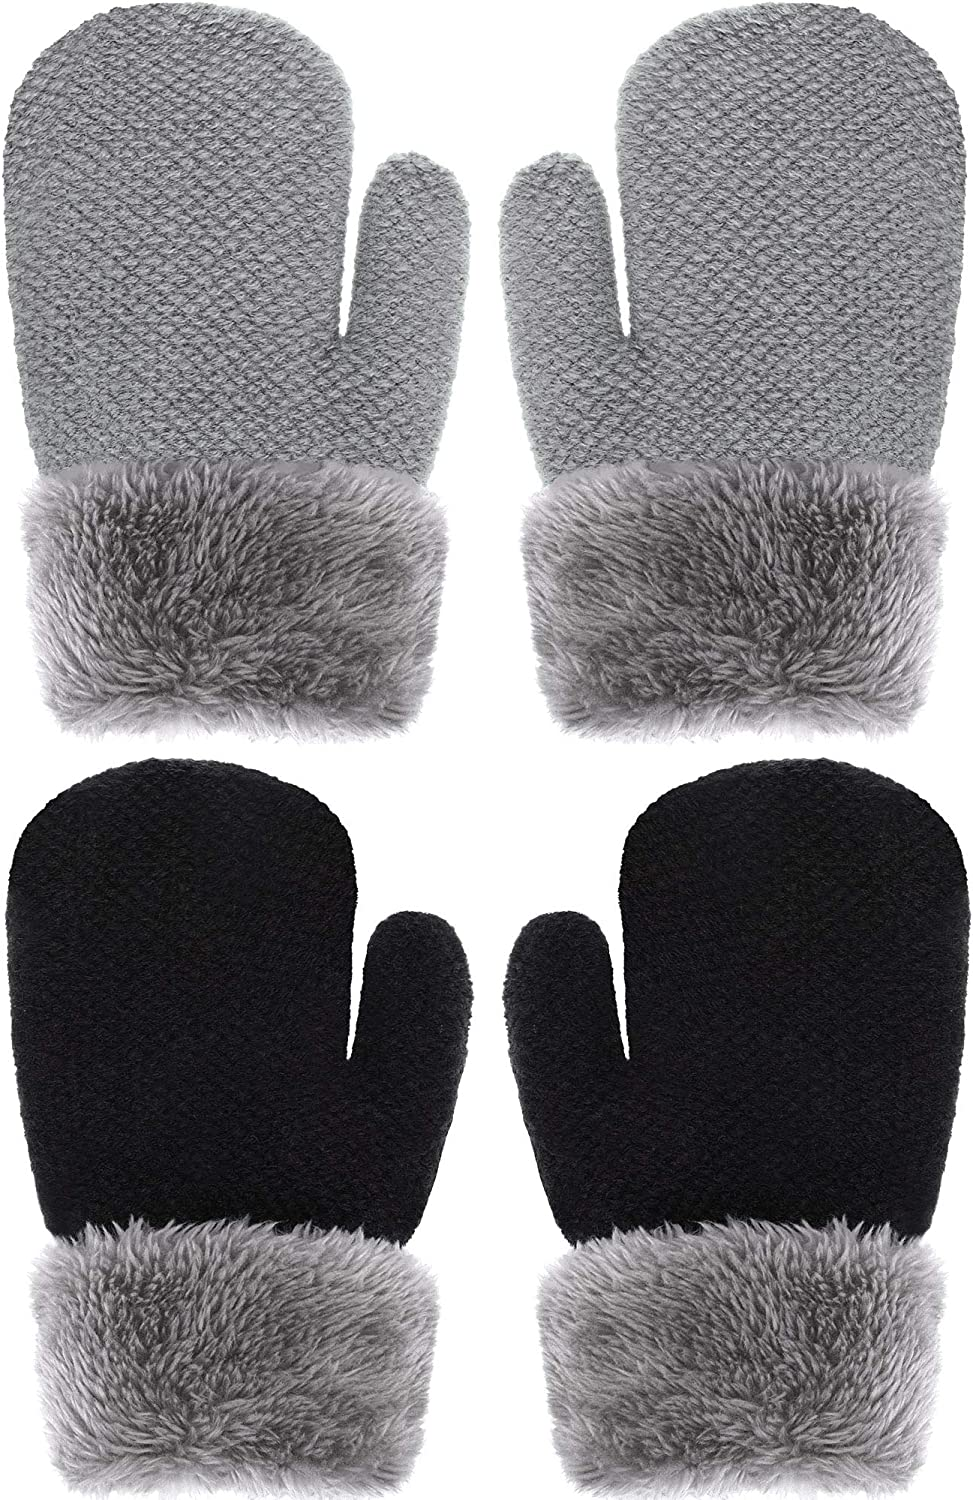 Boao 2 San Jose Mall Pairs Winter Toddler At the price Lined Gloves Knit Plush Warm